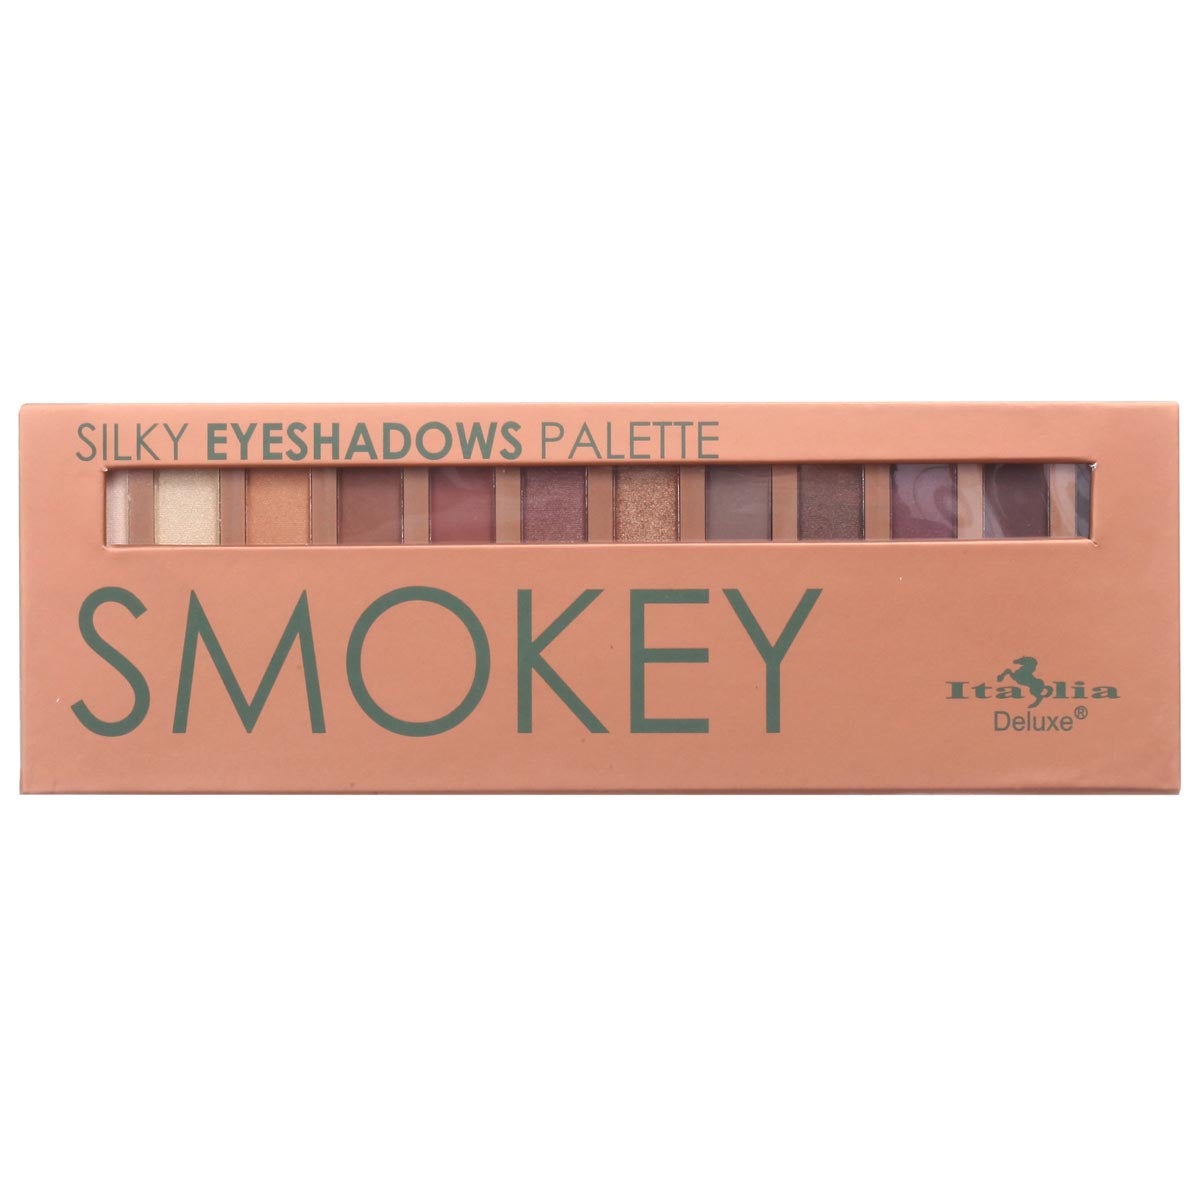 Silky Eyeshadow 12 Color Palette - Smokey